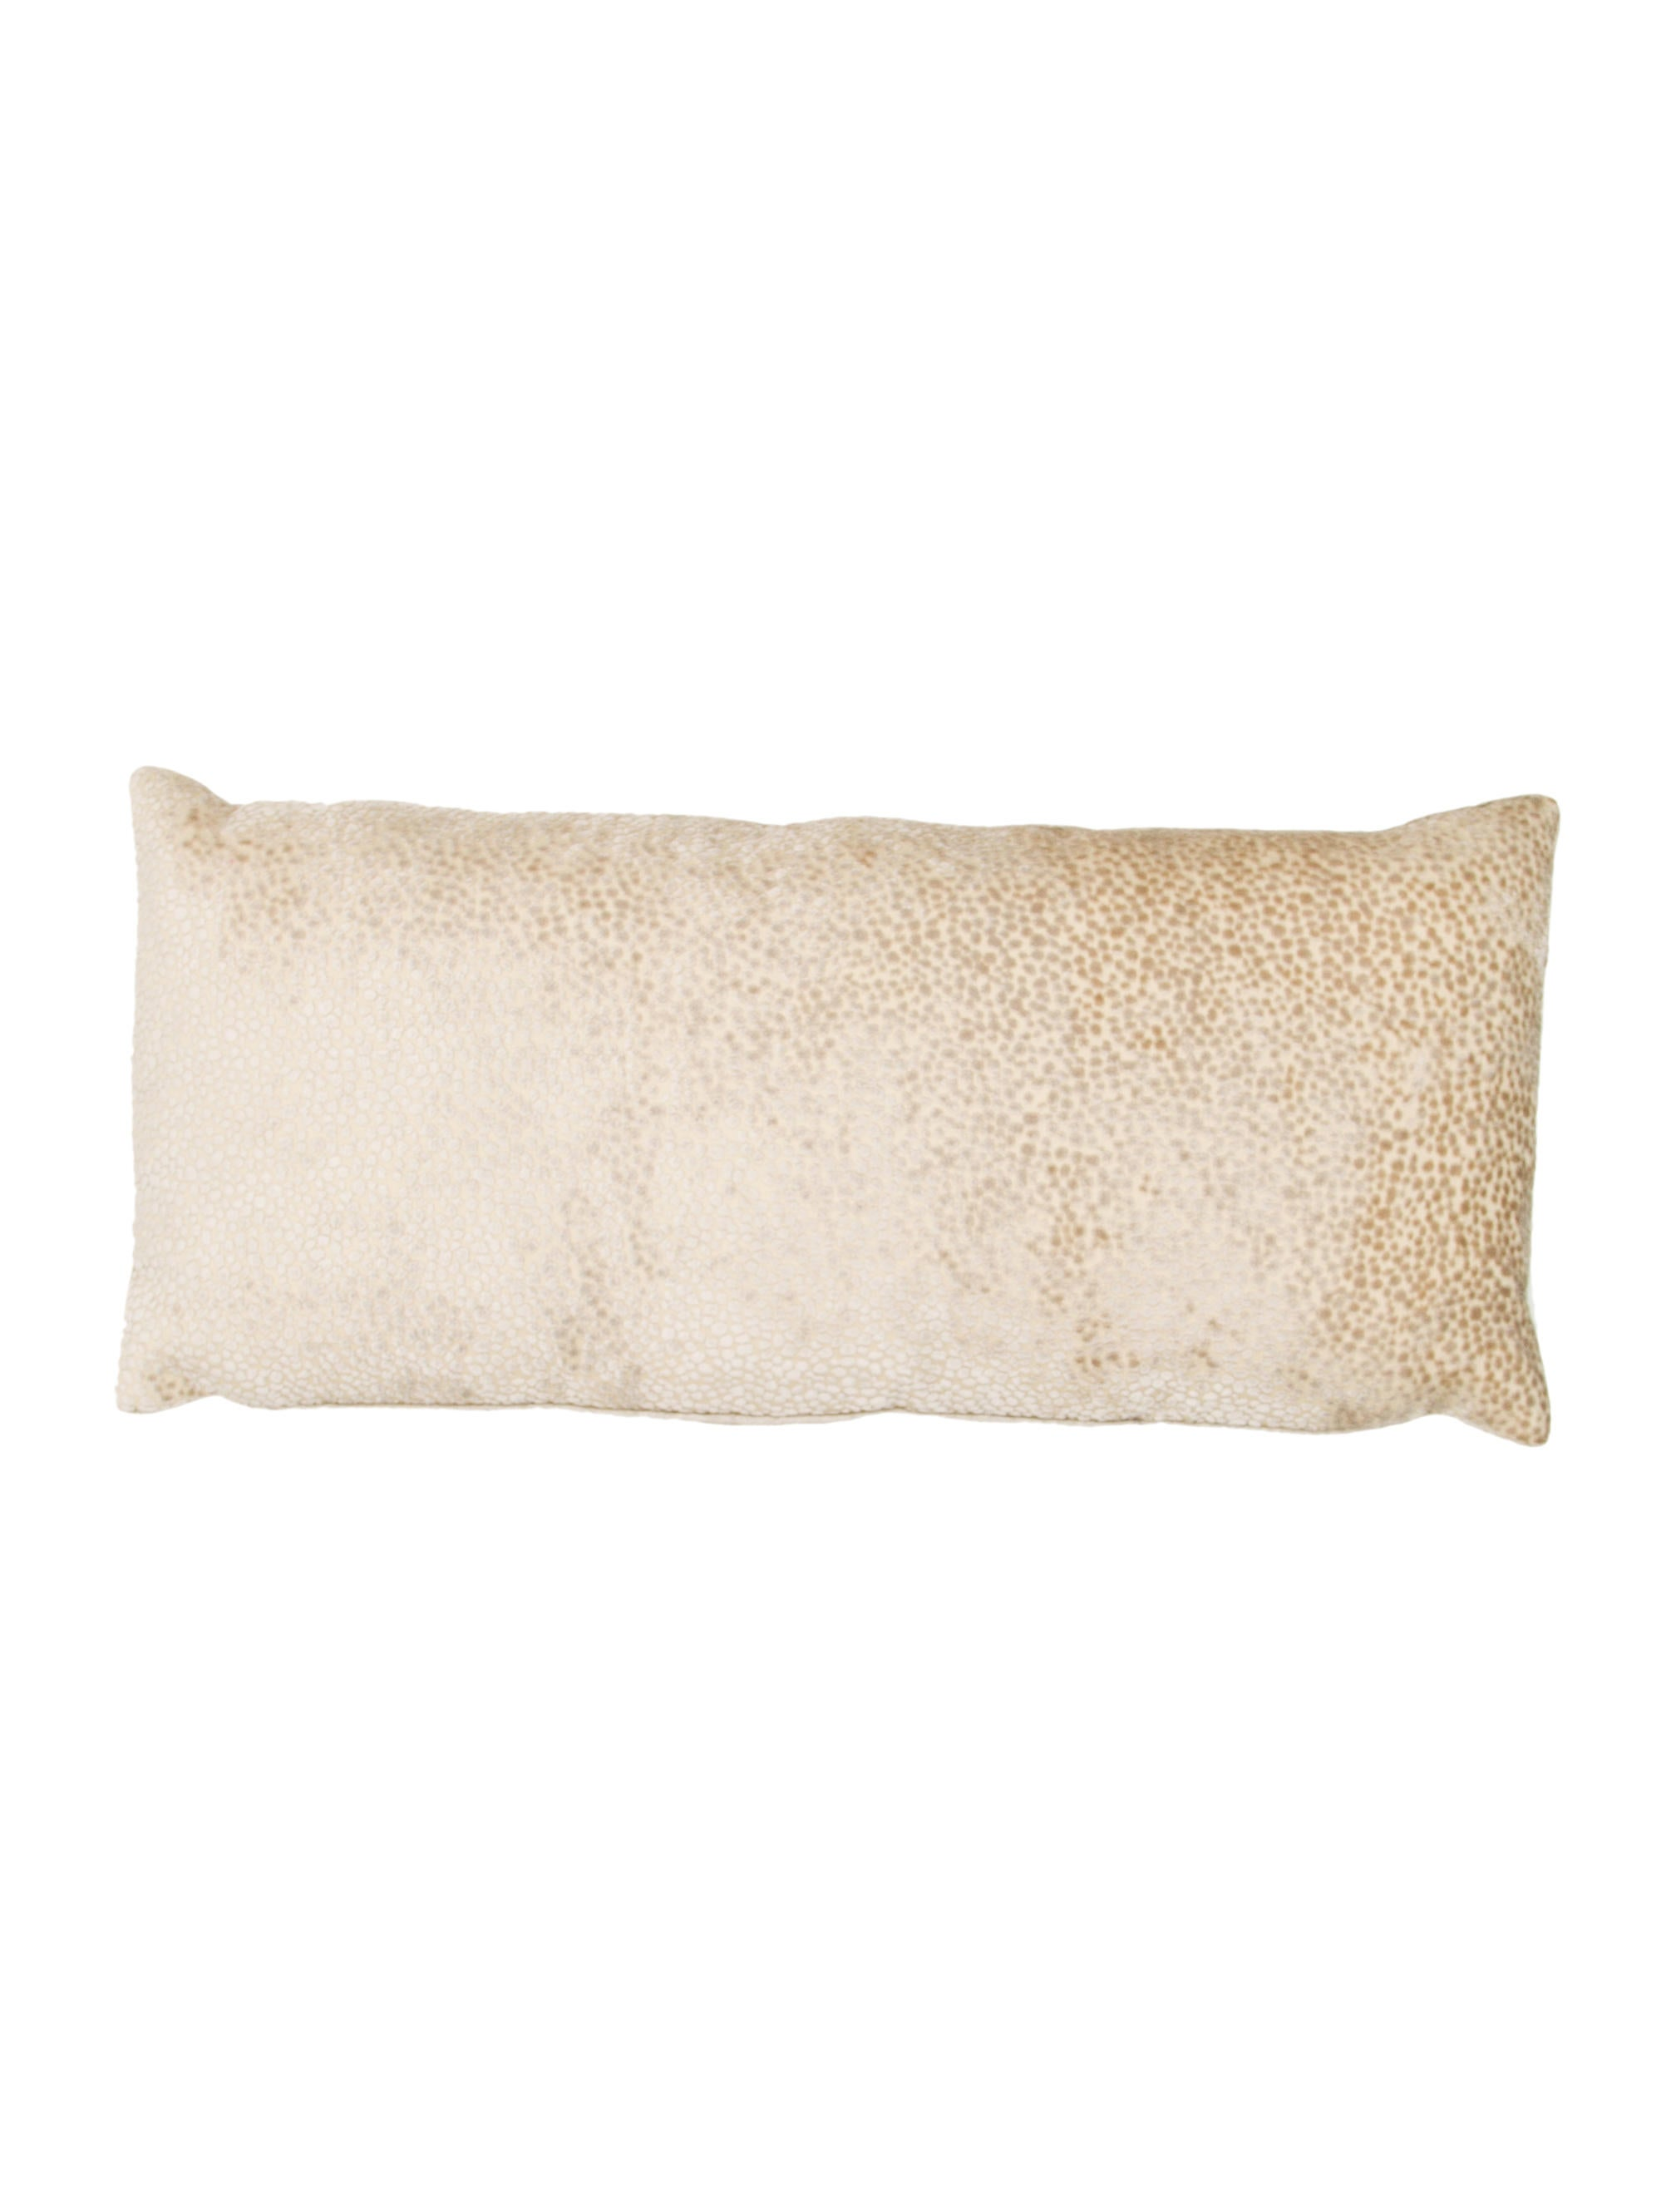 Dransfield & Ross Throw Pillow - Pillows And Throws - WDRNS20032 The RealReal